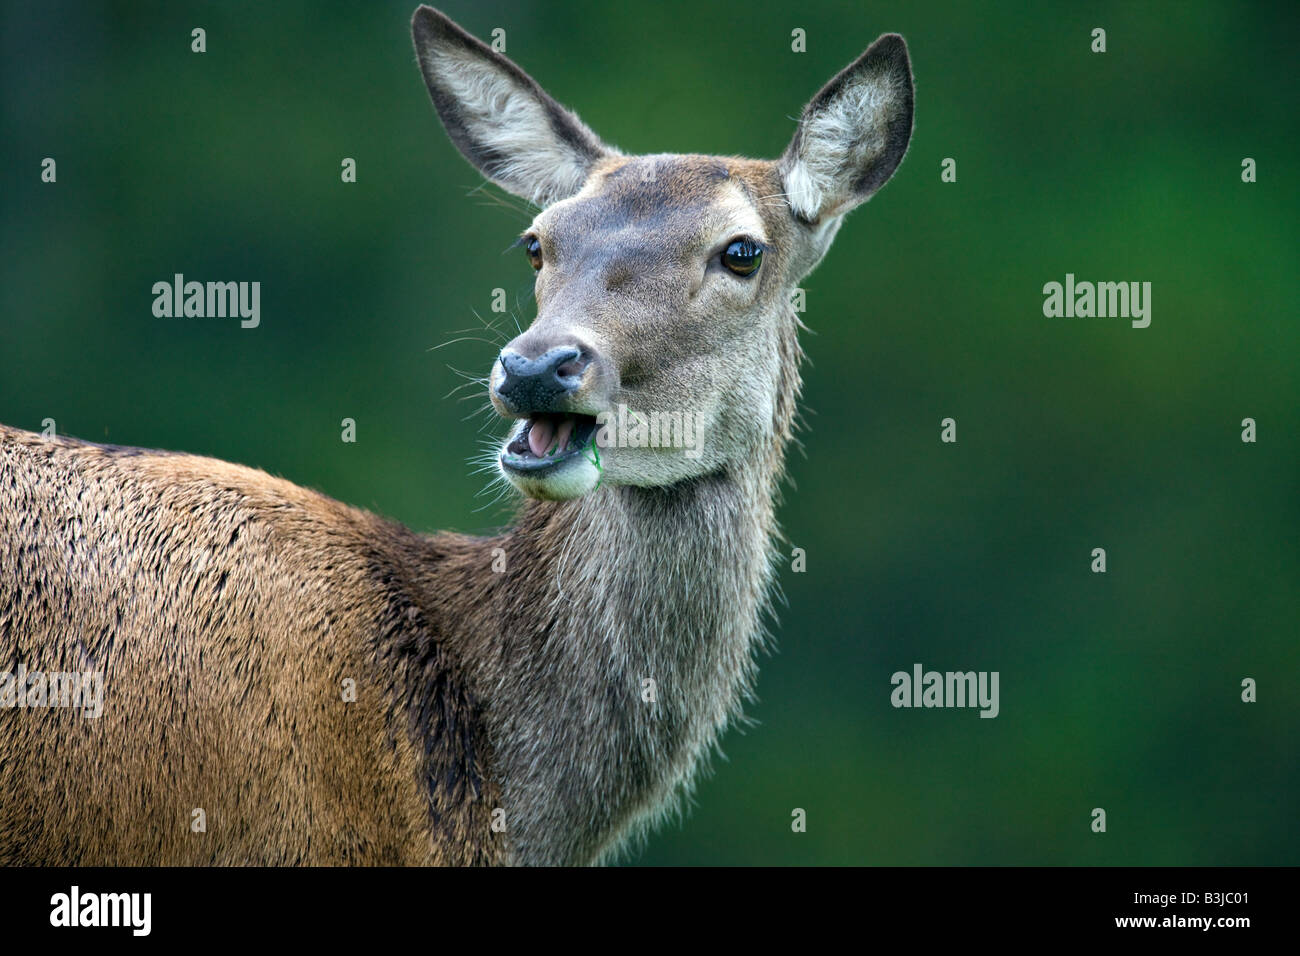 The Bactrian deer (Cervus elaphus bactrianus), also called the Bukhara deer, - Stock Image